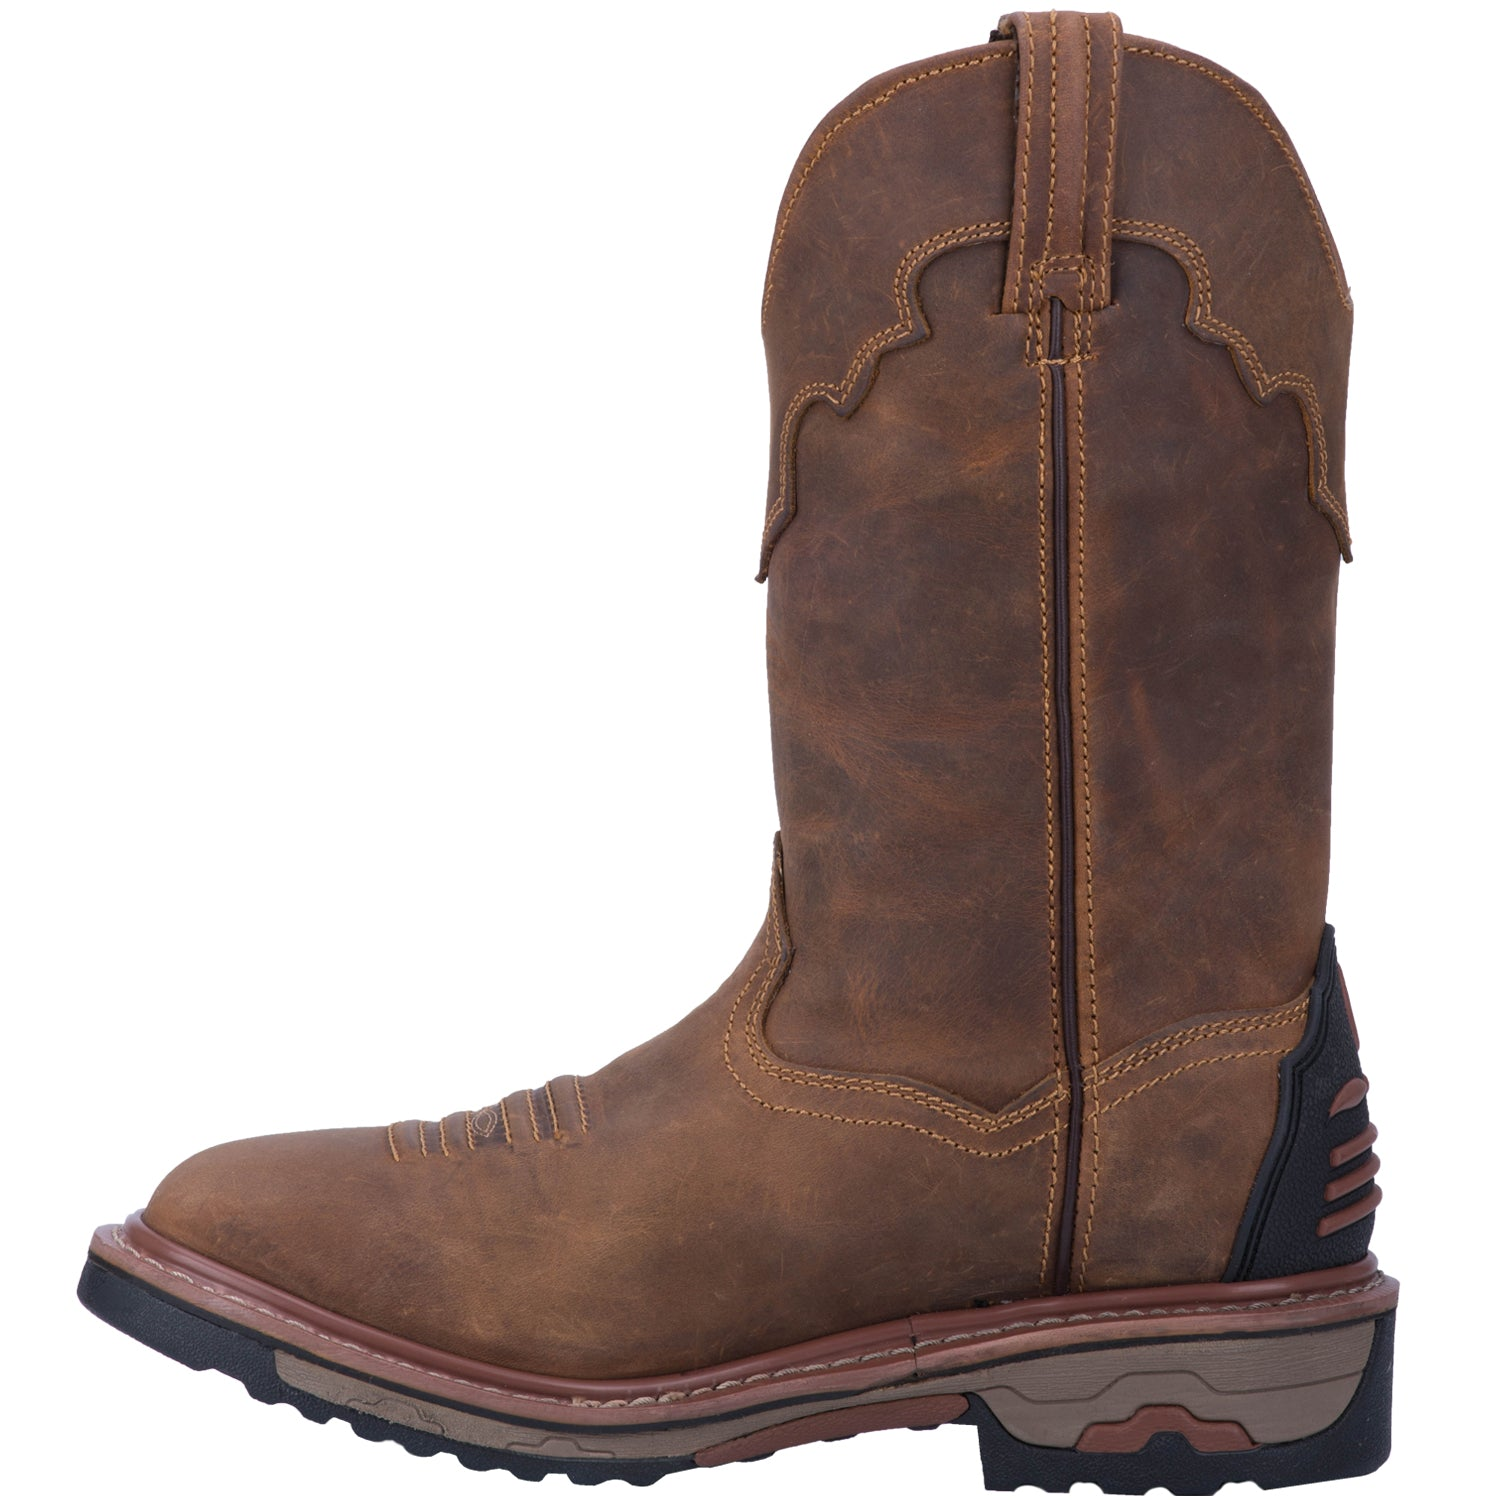 BLAYDE- WATERPROOF LEATHER BOOT 4194435530794